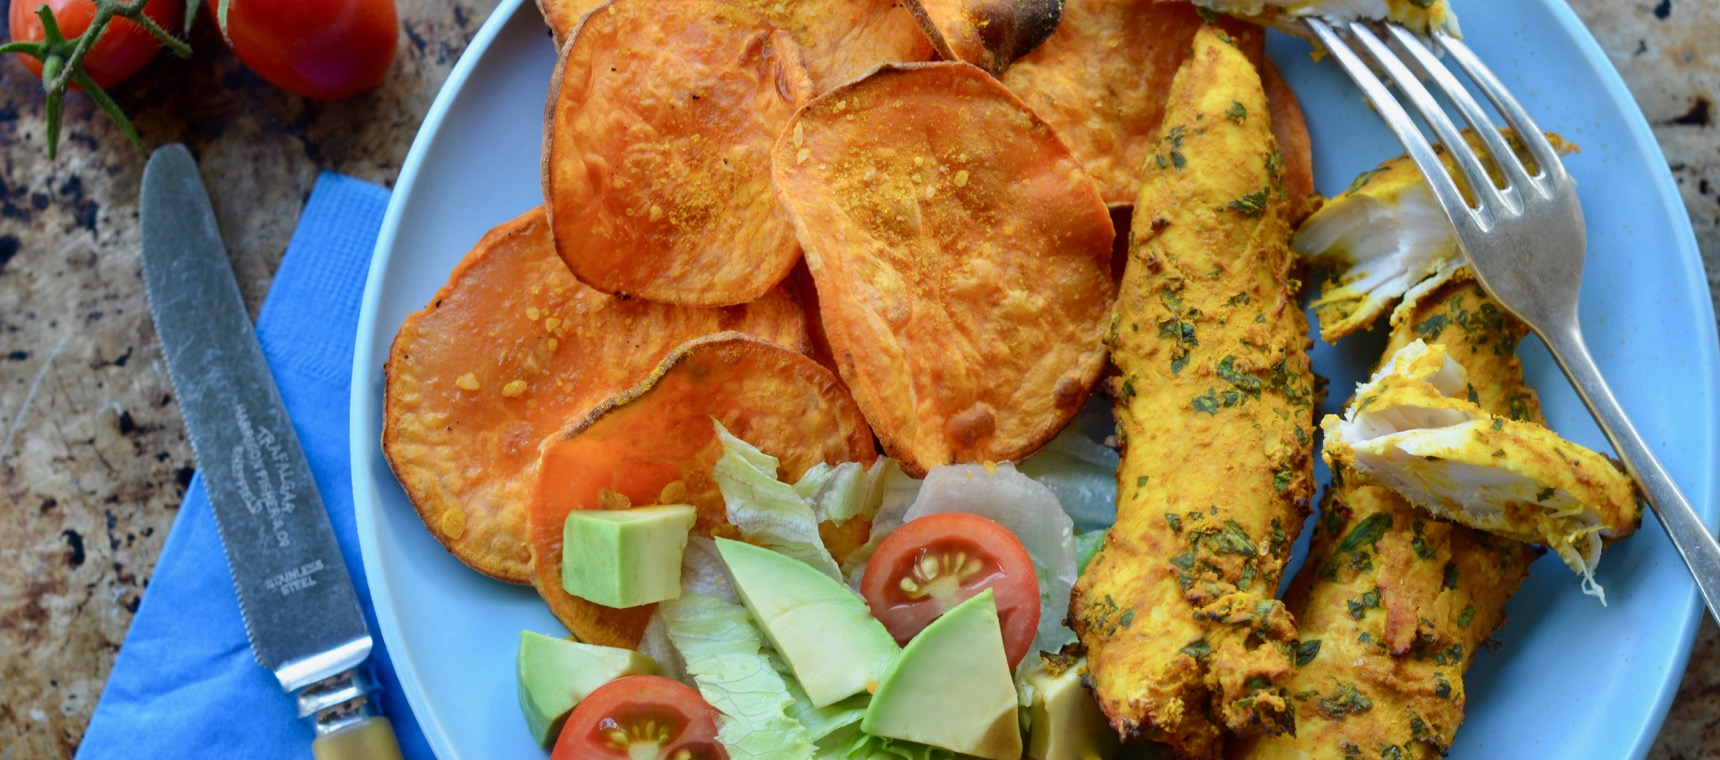 BBQ Turmeric Chicken and Sweet Potato Chips